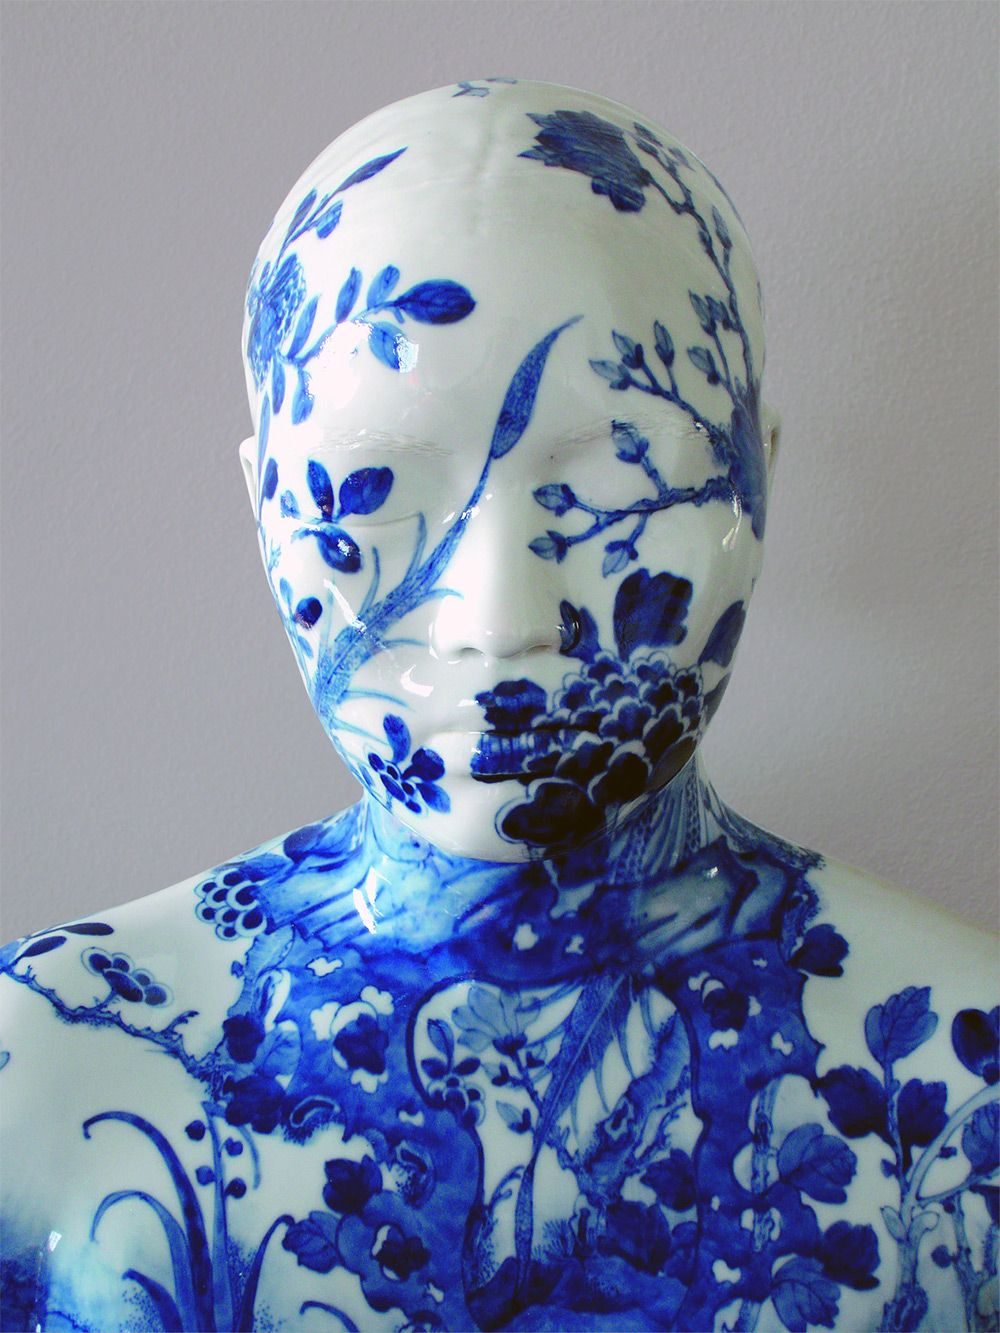 Decorative Porcelain Busts by Ah Xian Have Special Meaning